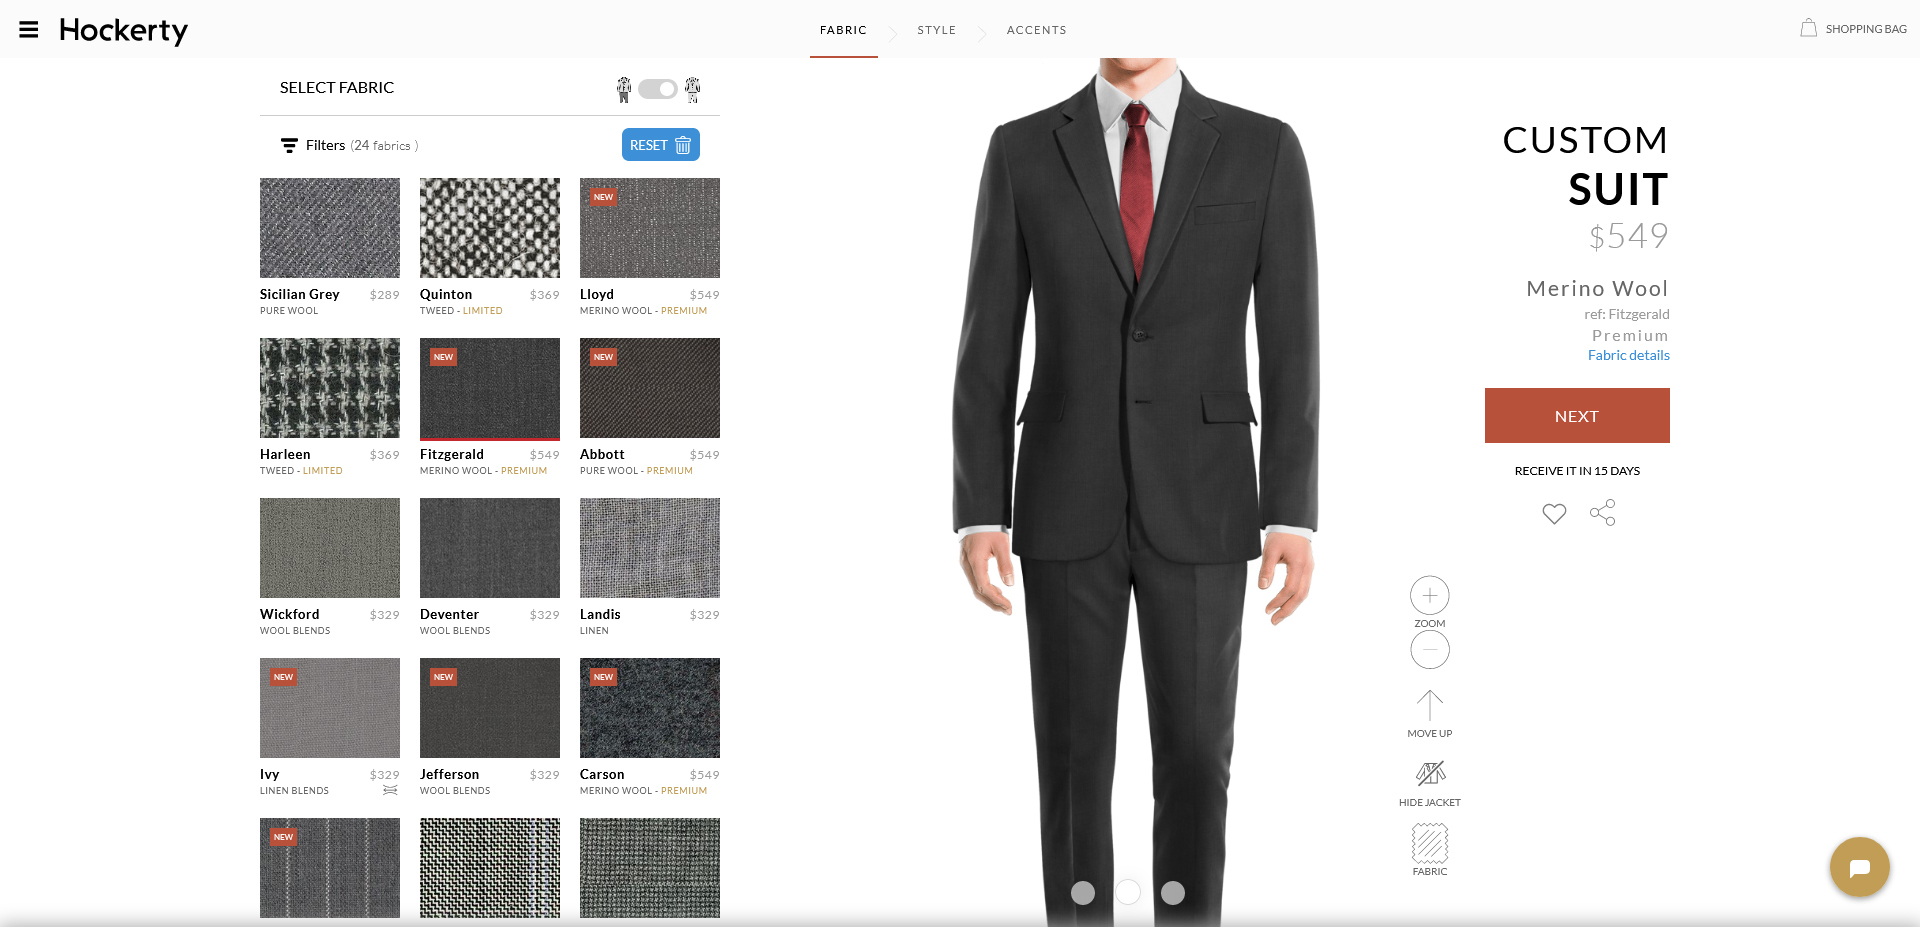 fitzgerald: charcoal grey suit fabric